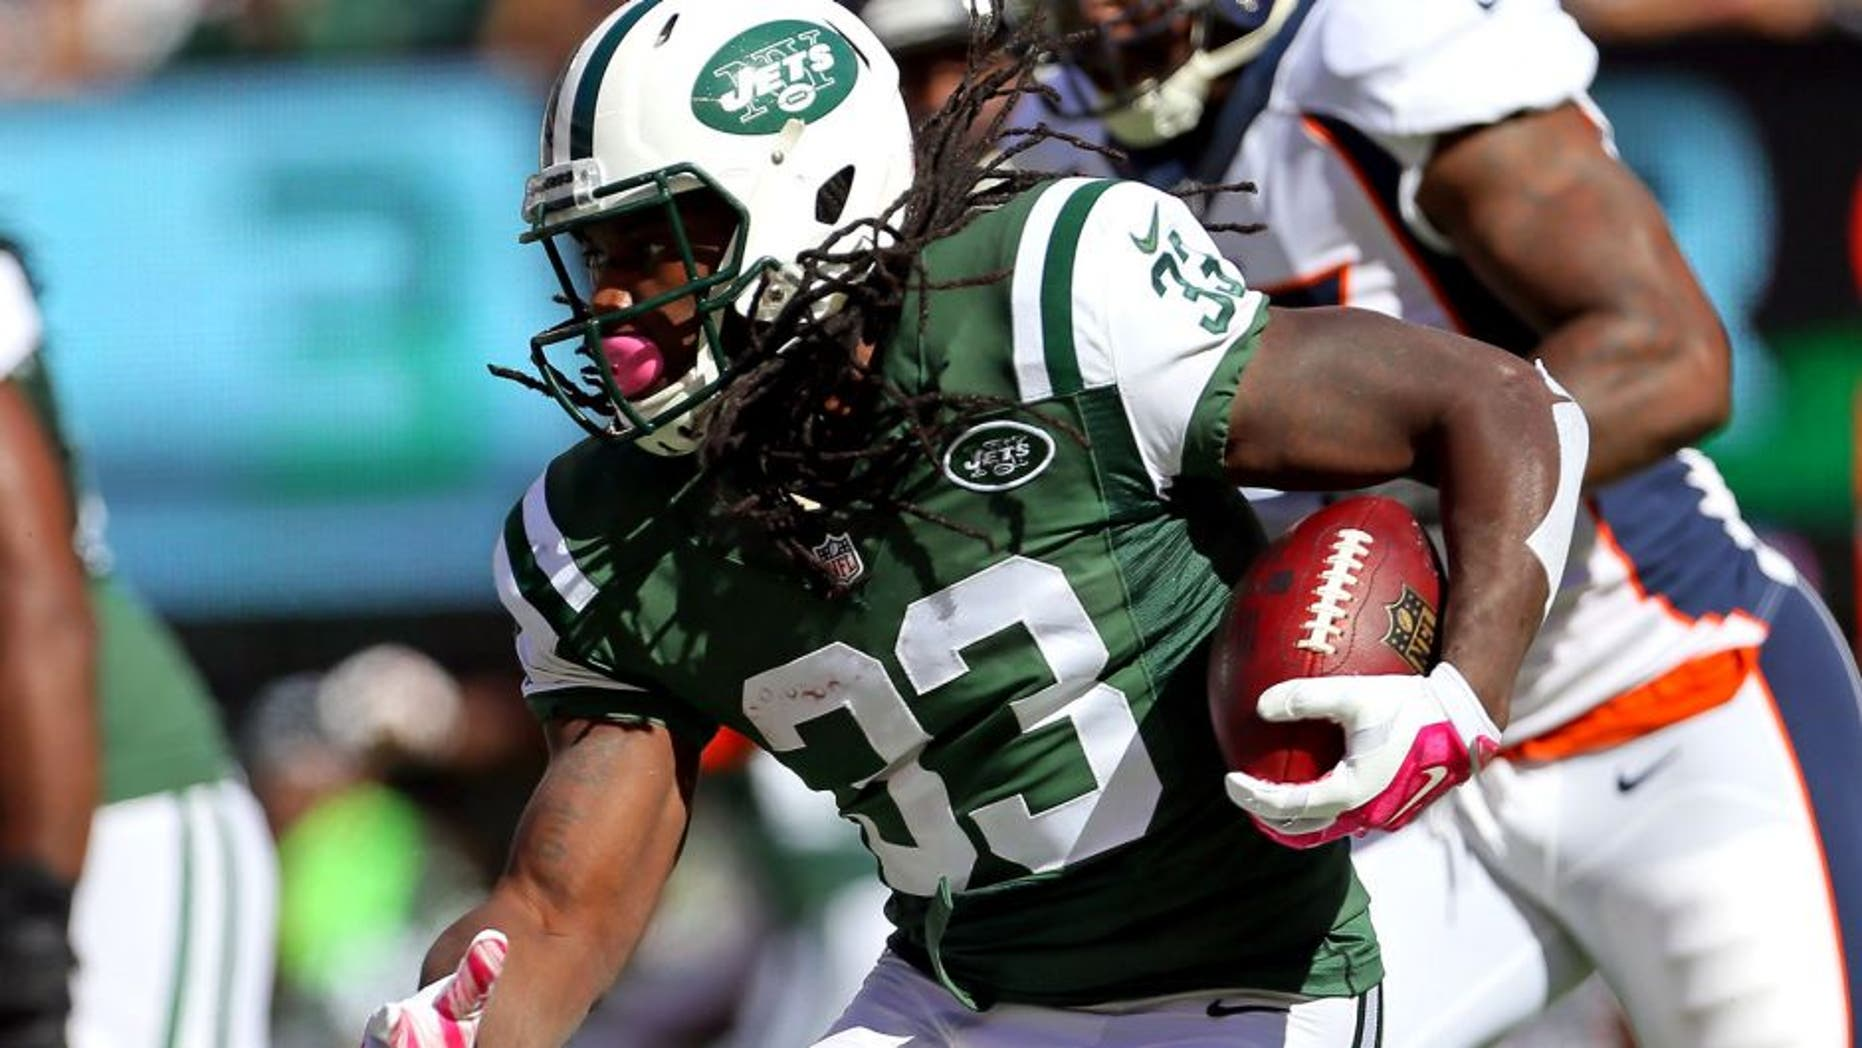 Oct 12, 2014; East Rutherford, NJ, USA; New York Jets running back Chris Ivory (33) rushes against the Denver Broncos during the first quarter of their NFL football game at MetLife Stadium. Mandatory Credit: Adam Hunger-USA TODAY Sports